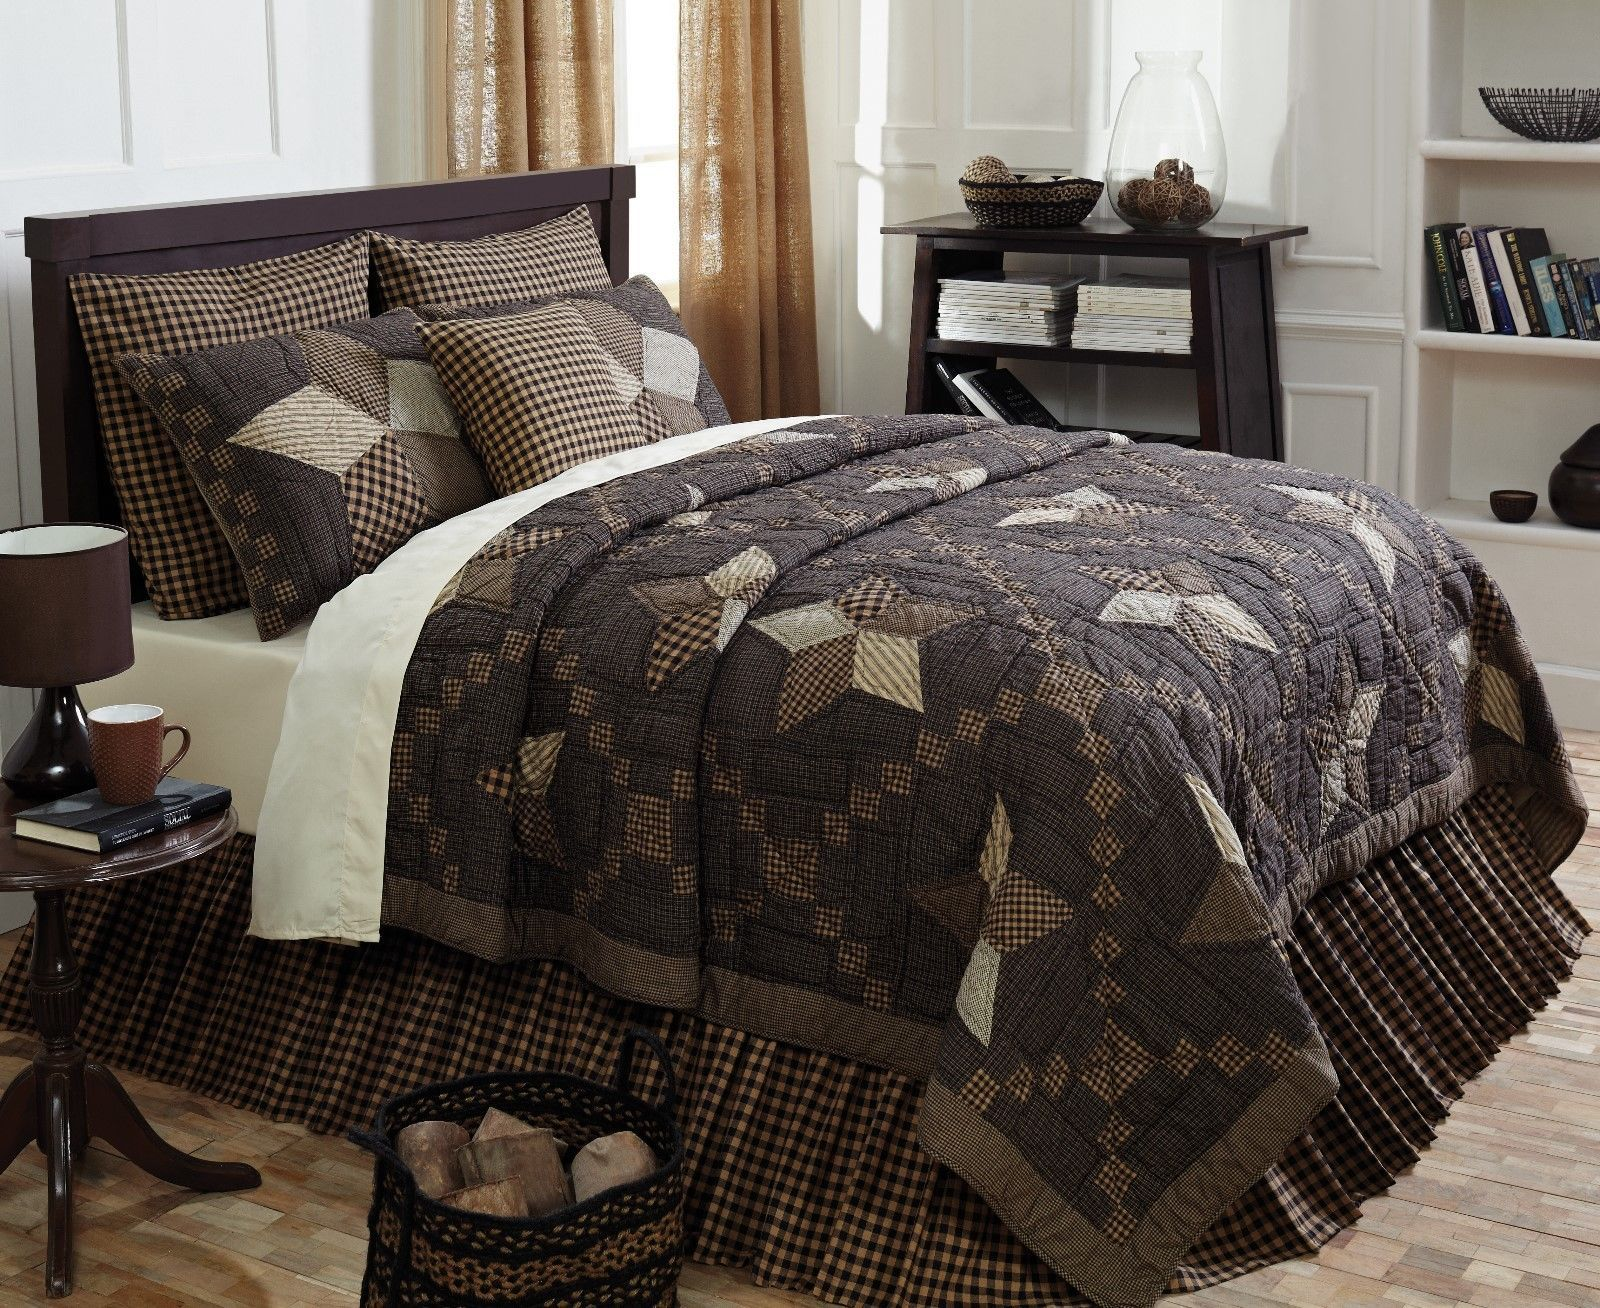 6-pc Queen - FARMHOUSE STAR Quilt Country Set - Black and Tan - VHC Brands